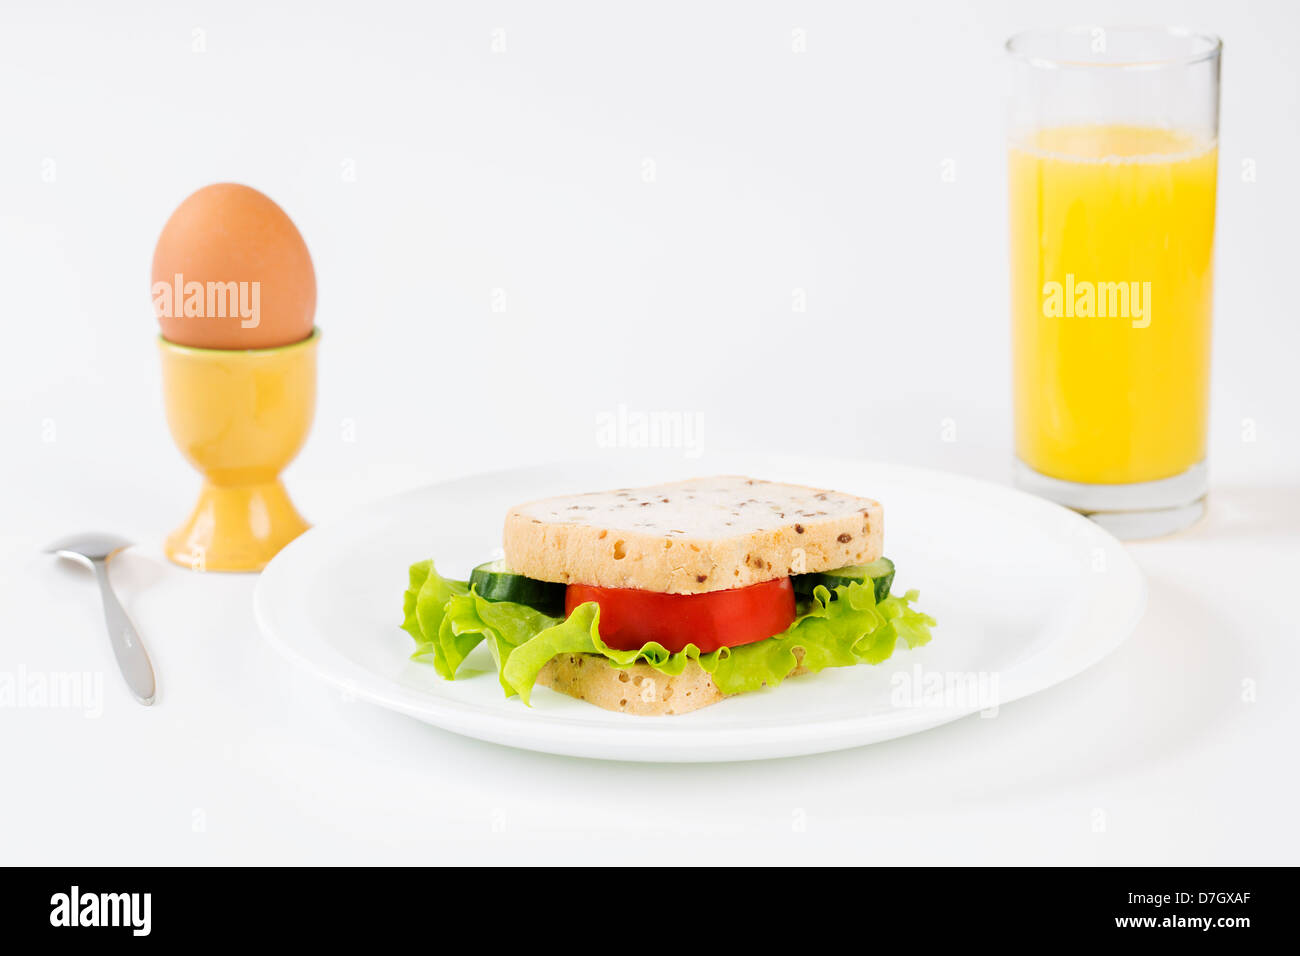 Sandwich between egg and juice satisfy hungry stomach - Stock Image